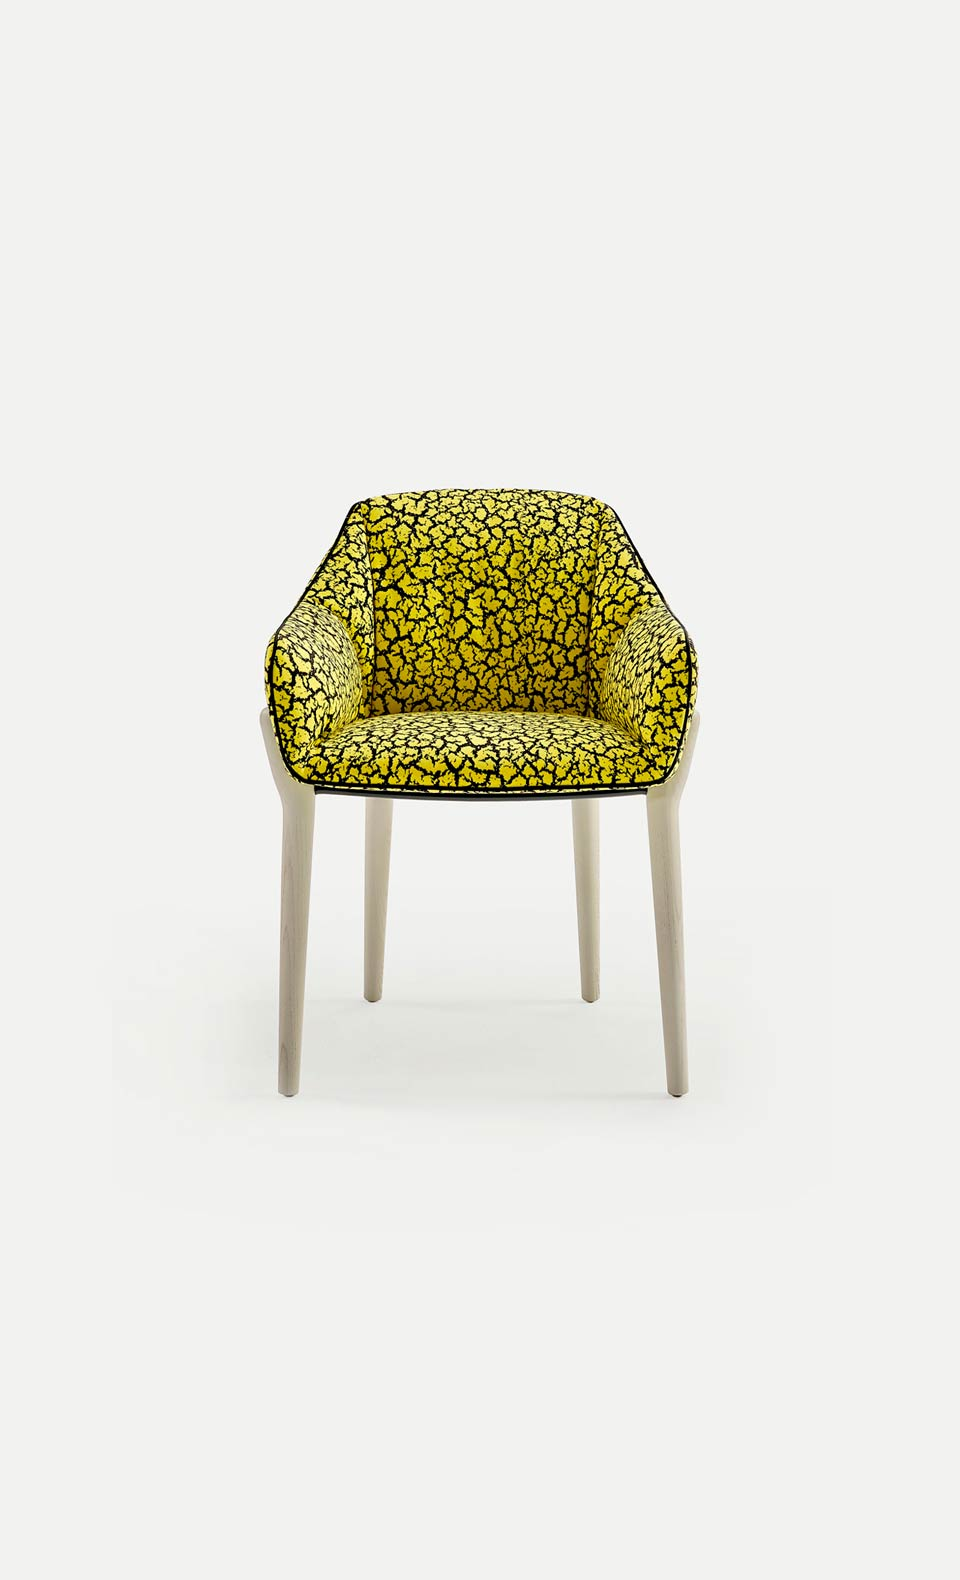 Bird Nest Chair Nido Sancal